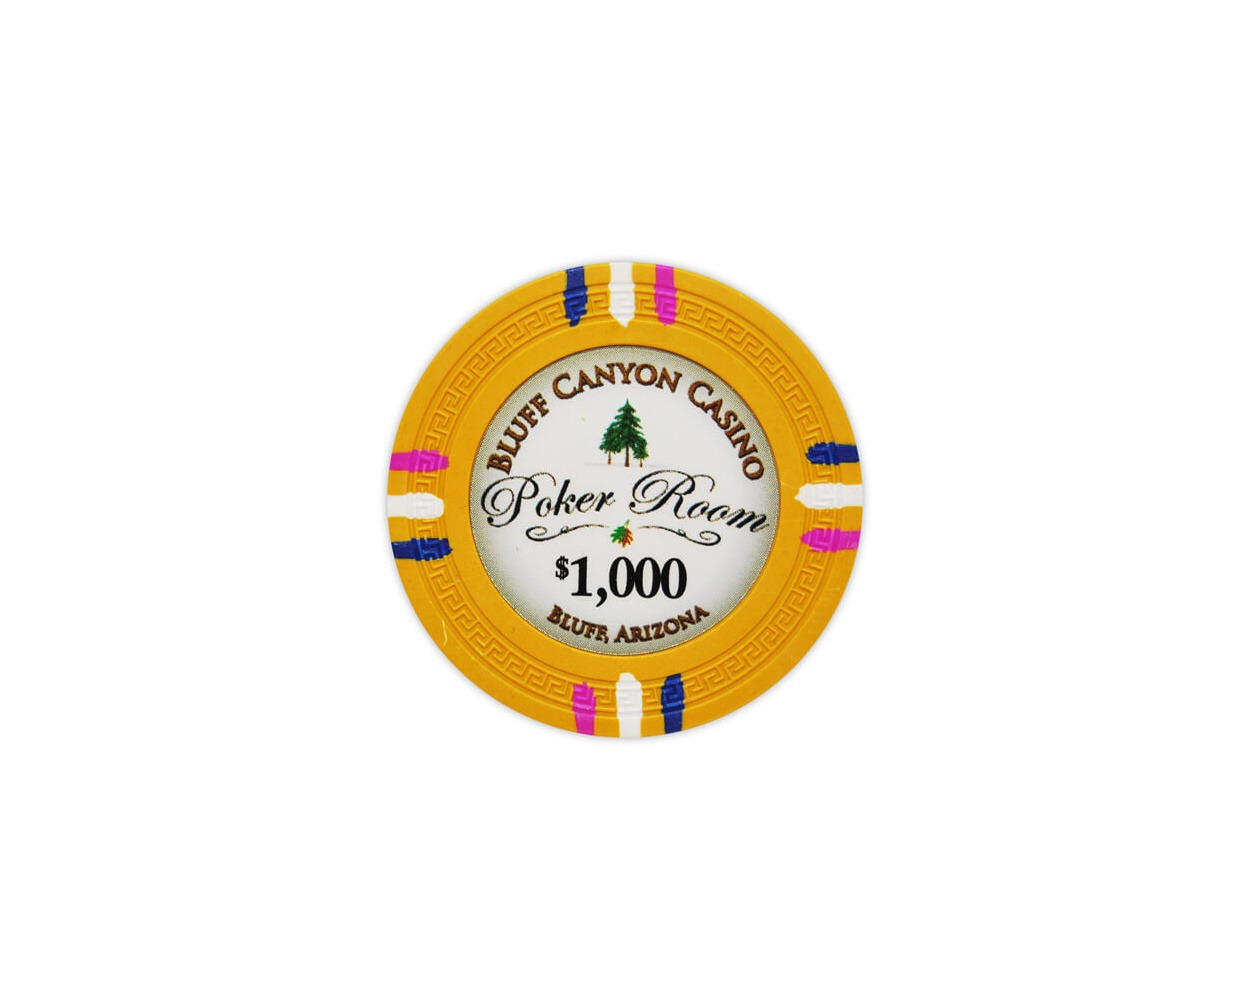 Bluff Canyon - $1000 Yellow Clay Poker Chips